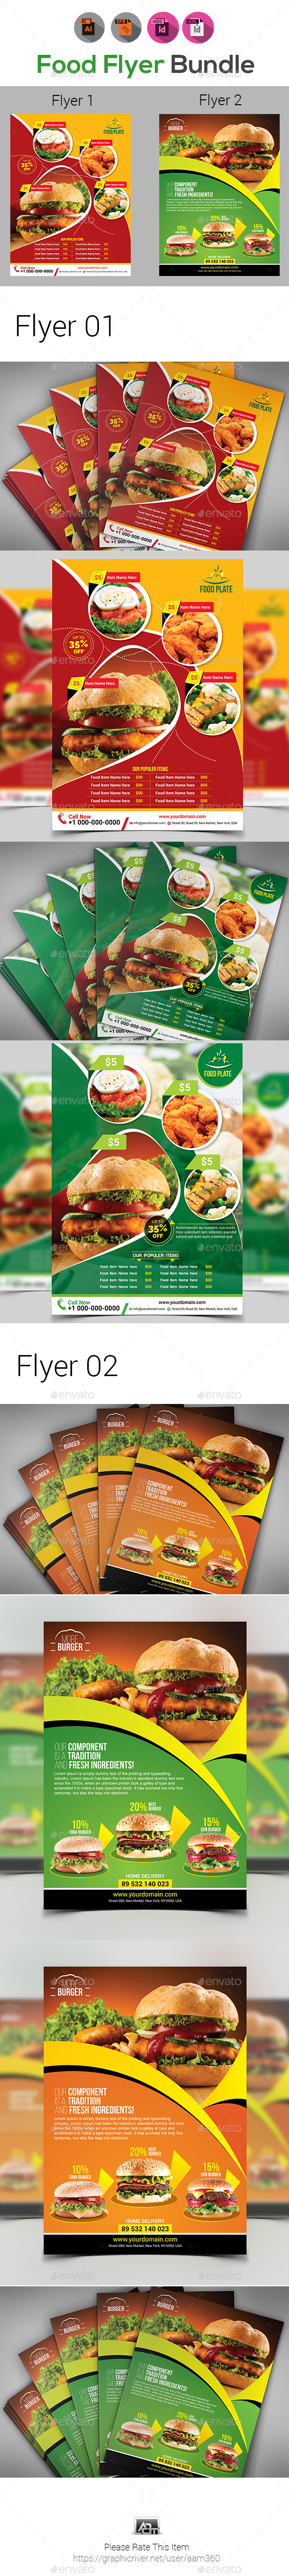 Restaurant or Food Flyer Templates - Restaurant Flyers